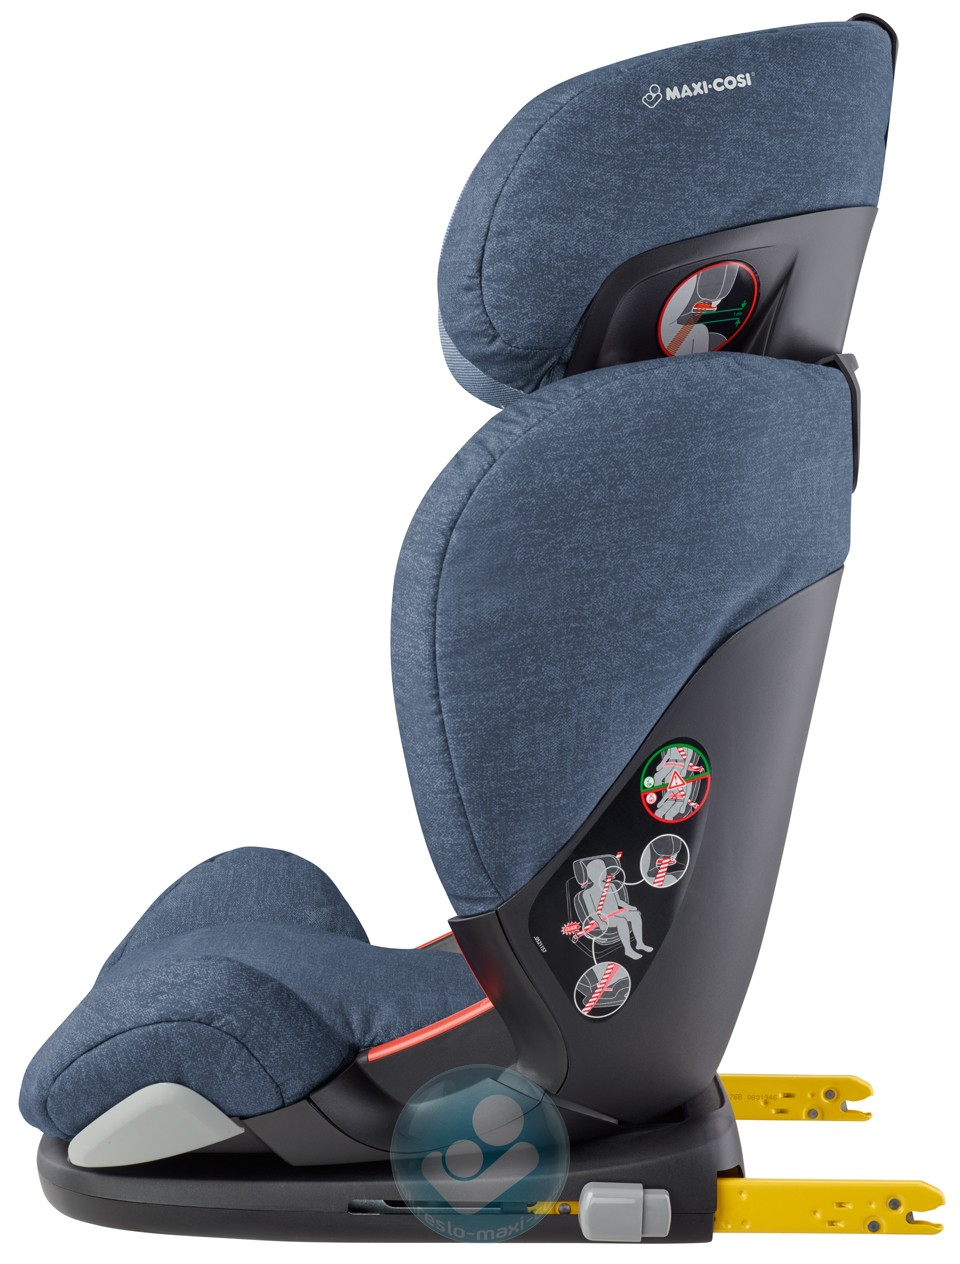 maxi cosi rodifix airprotect вид сбоку